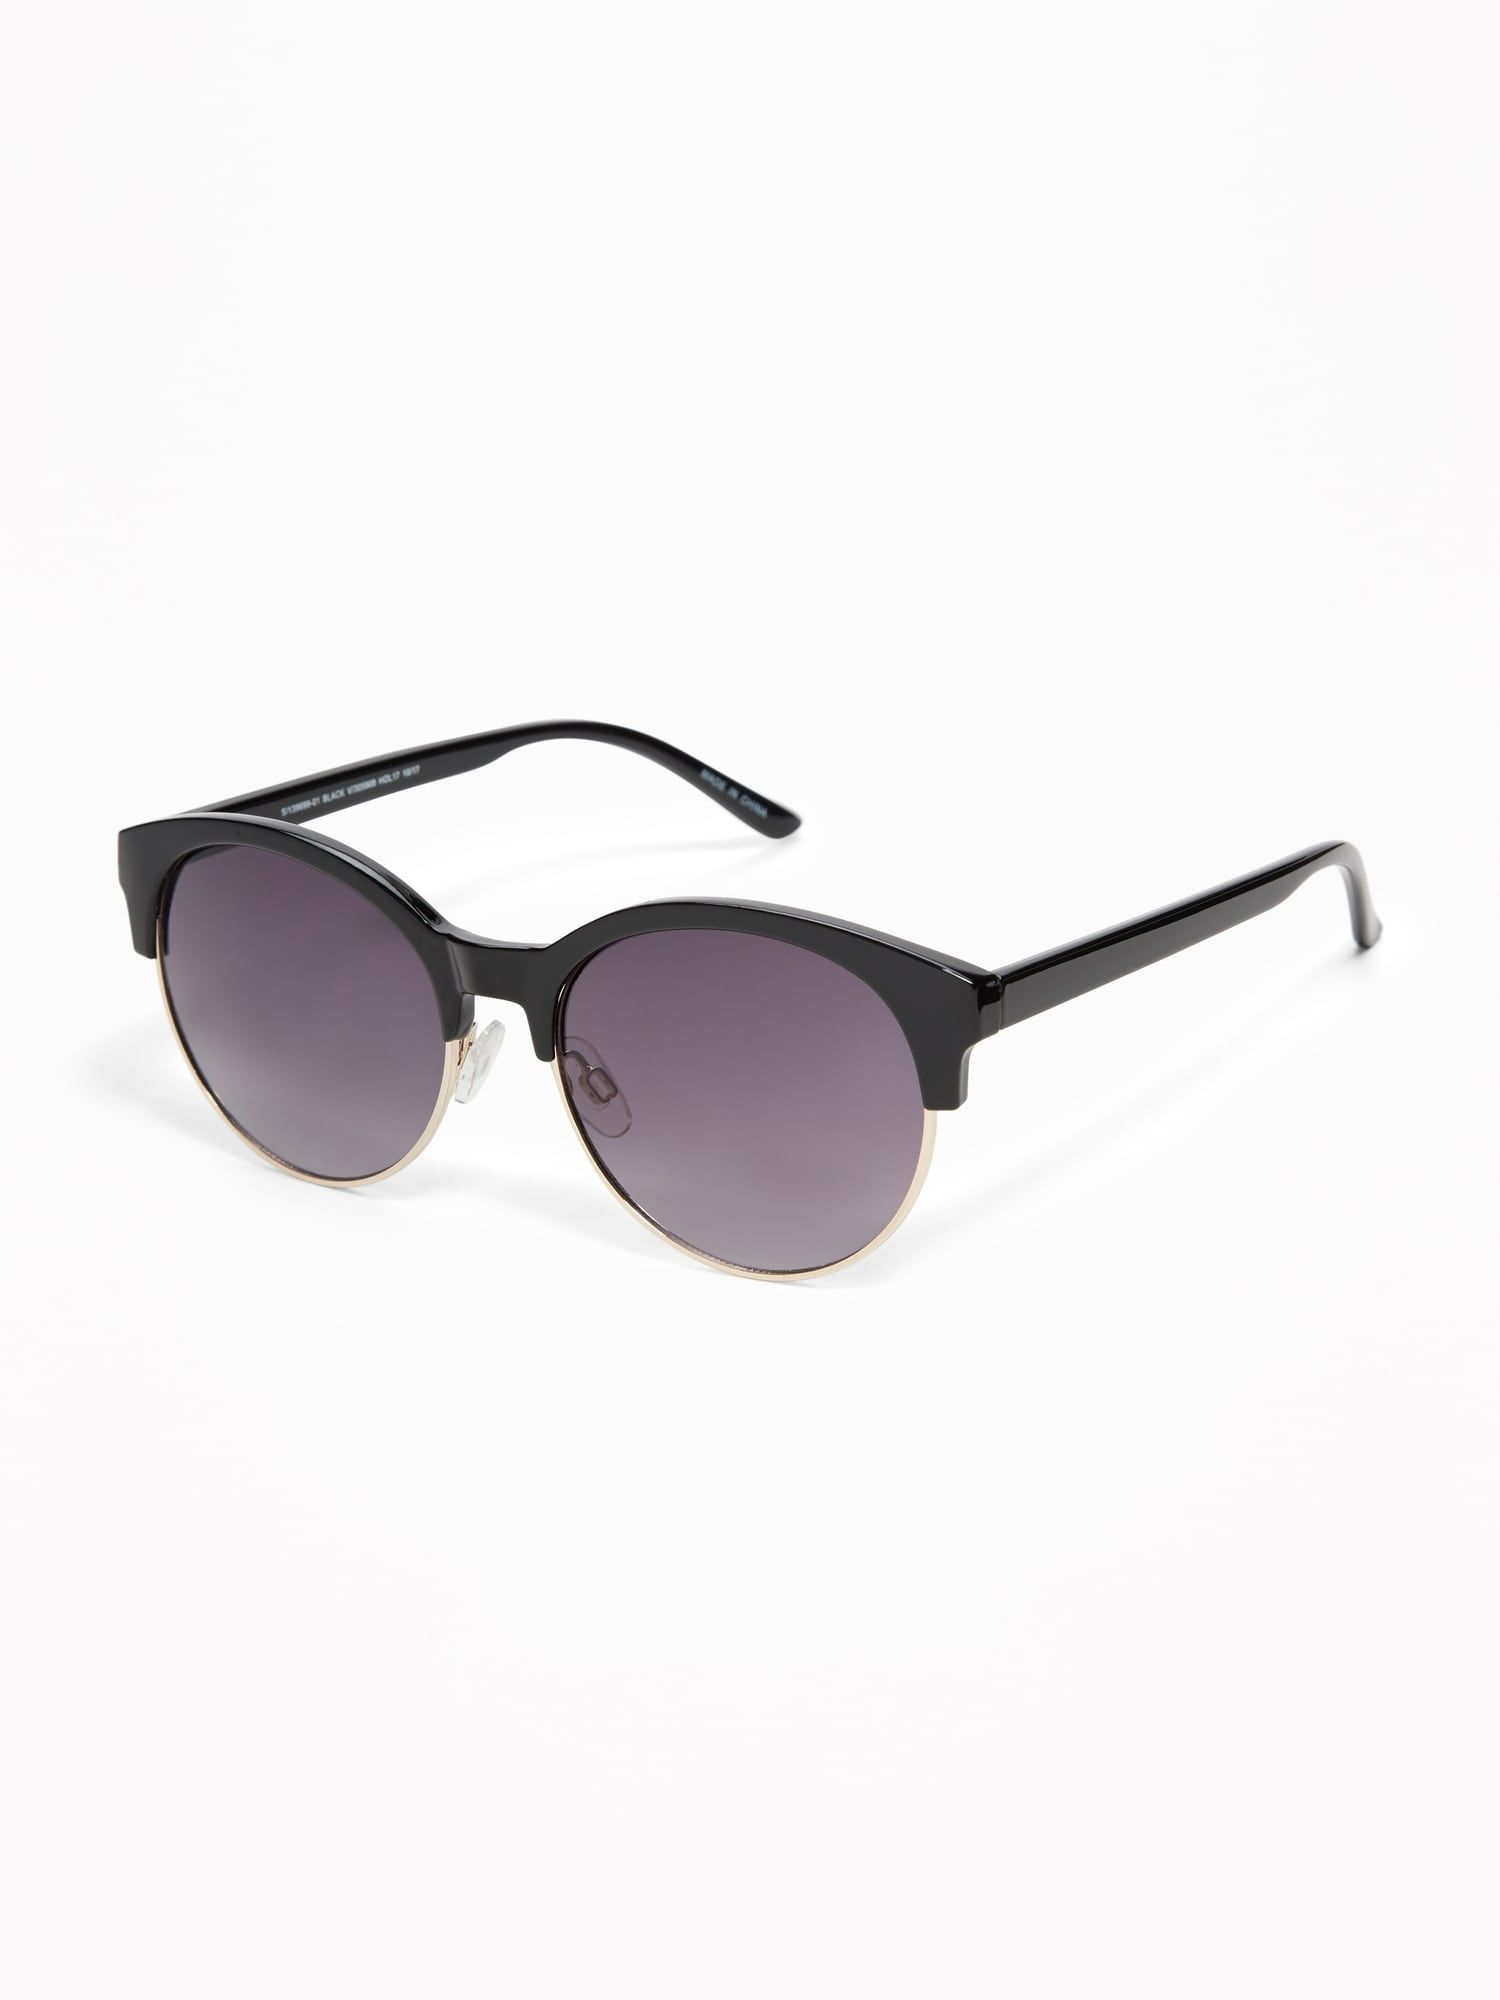 d788824908 Buy Old Navy Half-Frame Sunglasses For Women in Egypt